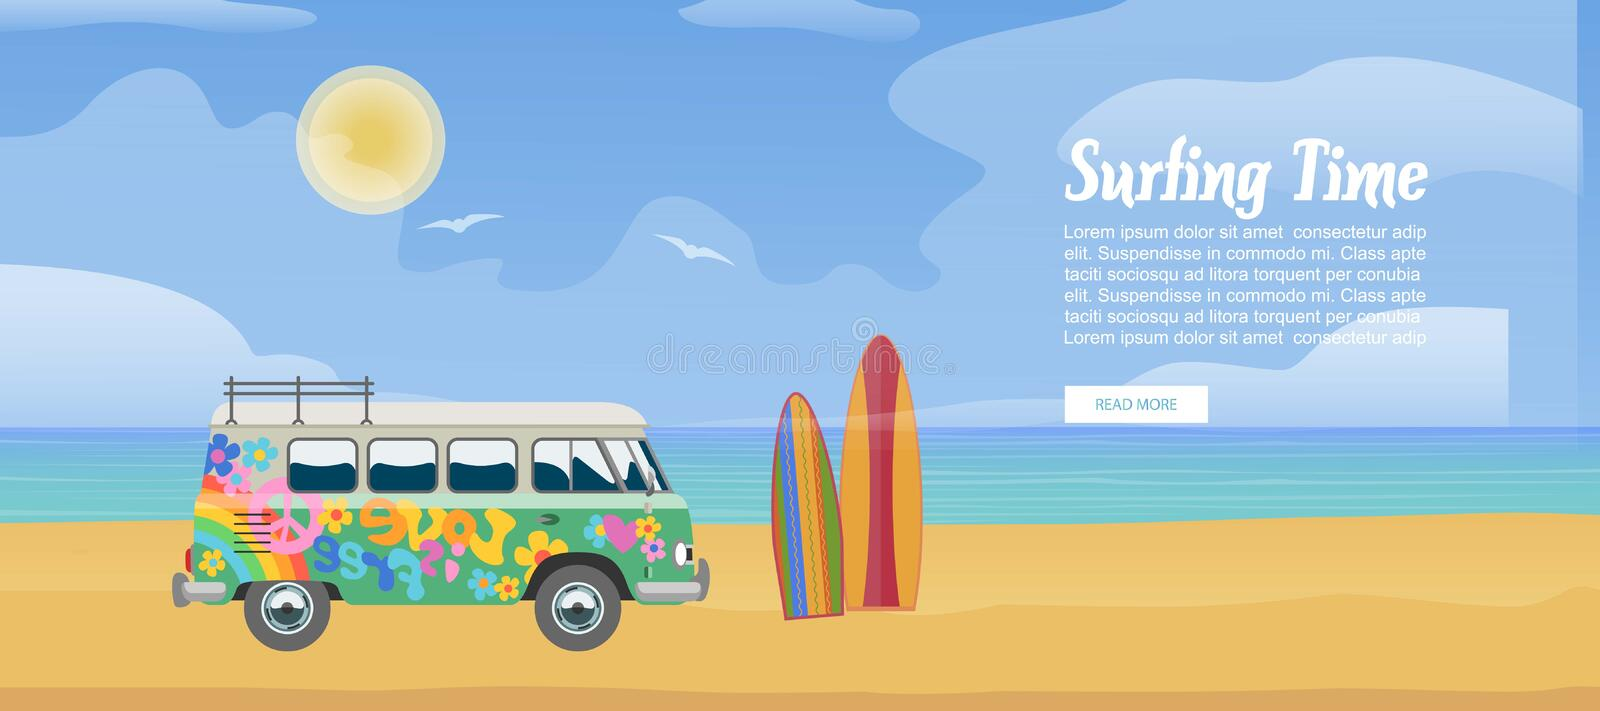 Surfing van on the sandy beach, surfboard, sea waves and clear sunny day vector illustration. Surf bus poster design for vector illustration